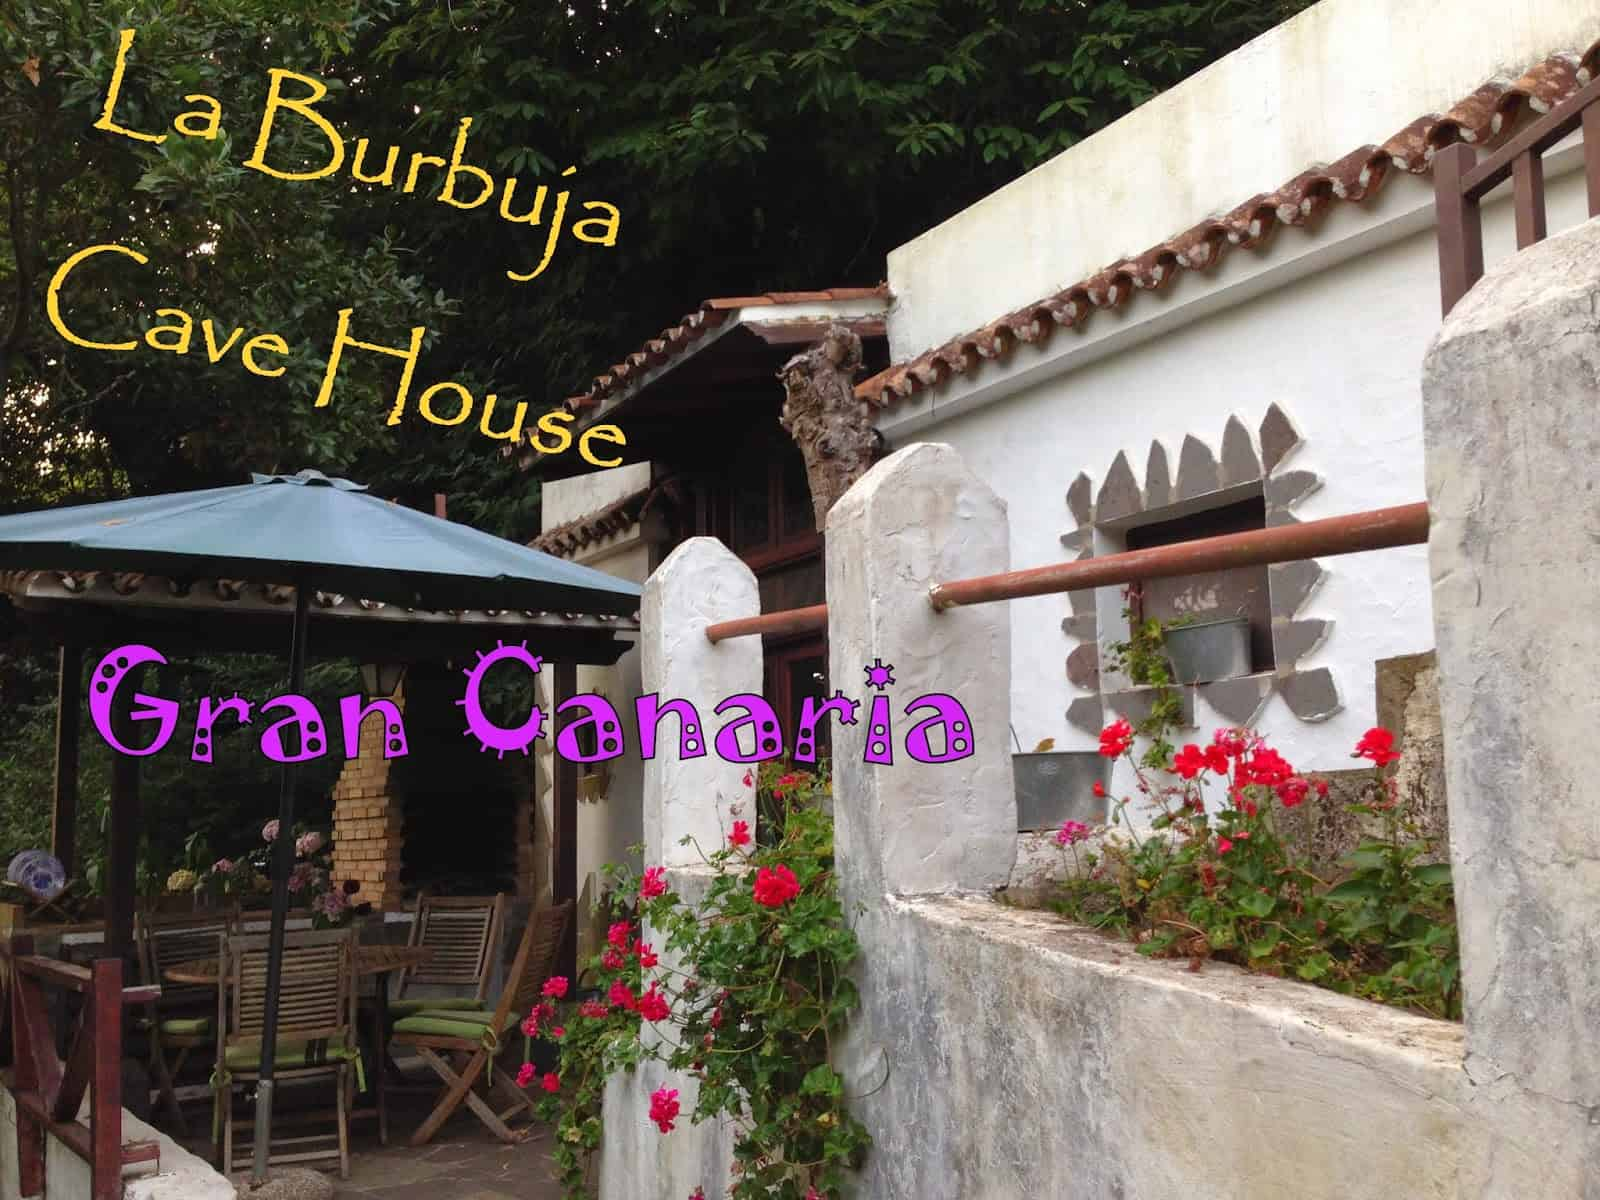 When in Gran Canaria, an experience in Cave House is a must!